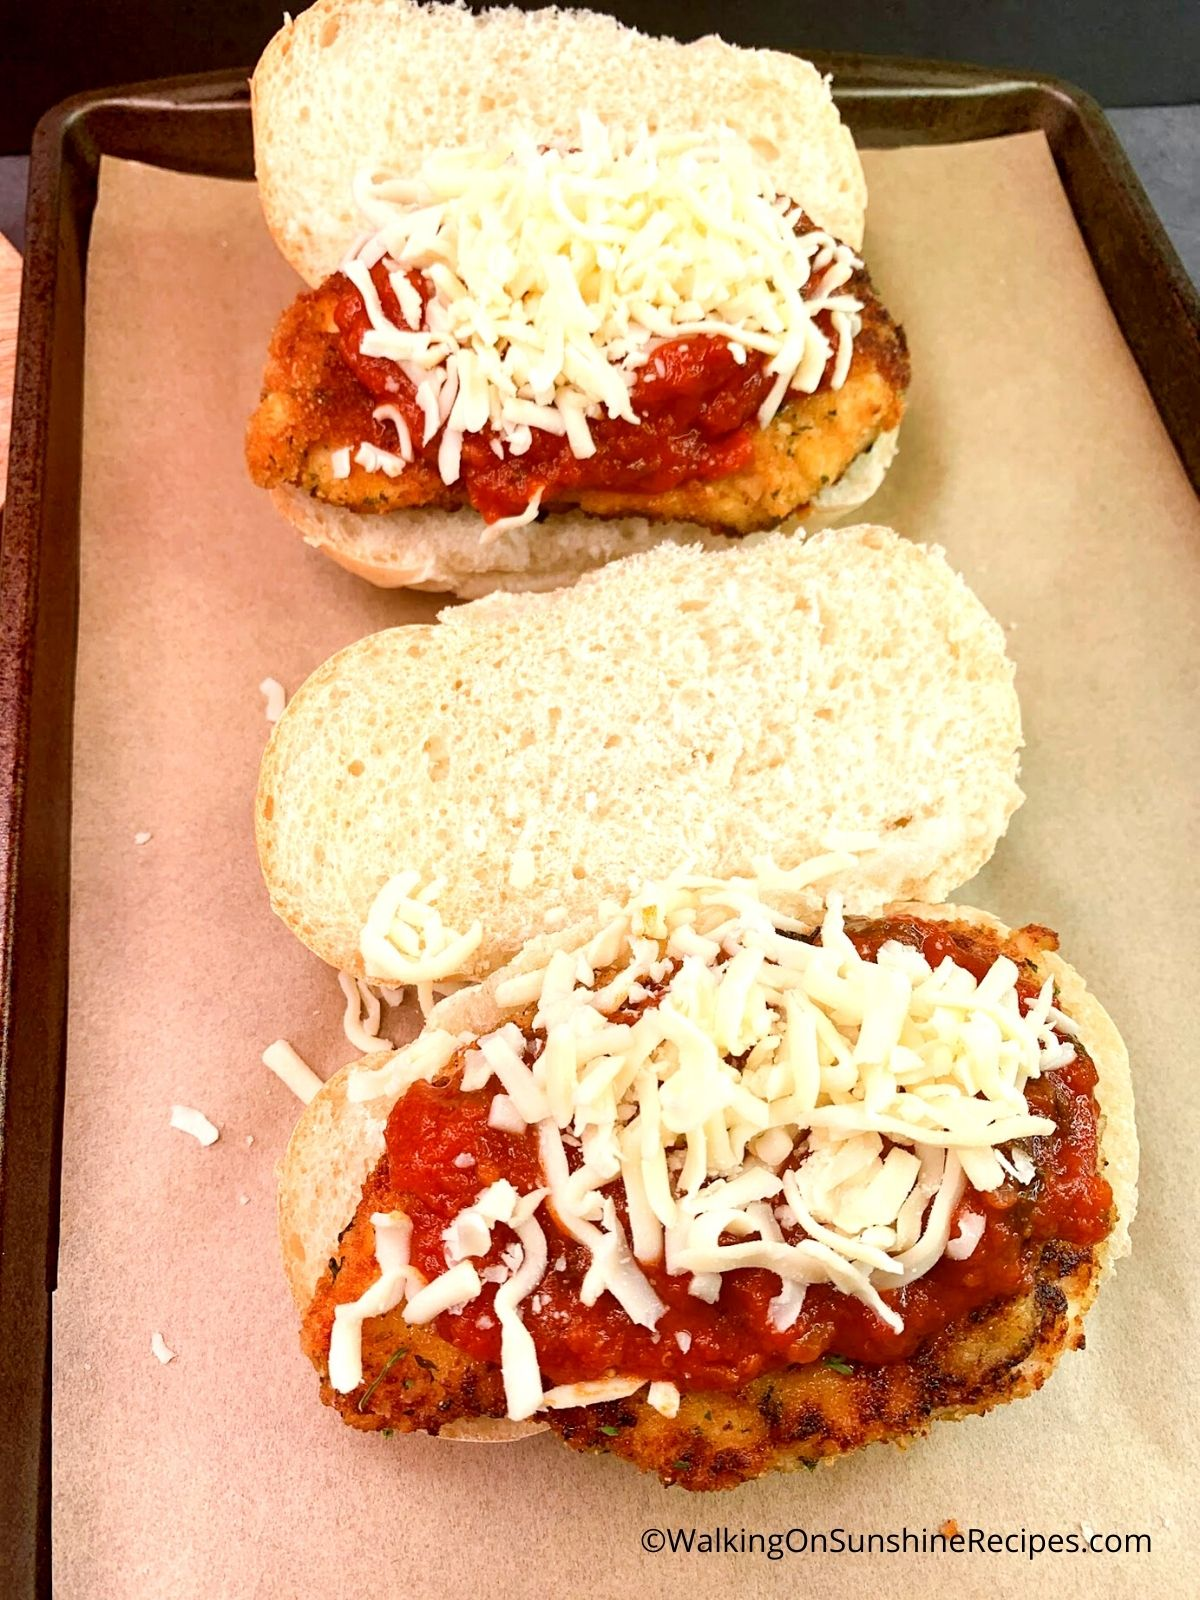 Cheese and Marinara Sauce on top of chicken cutlets.